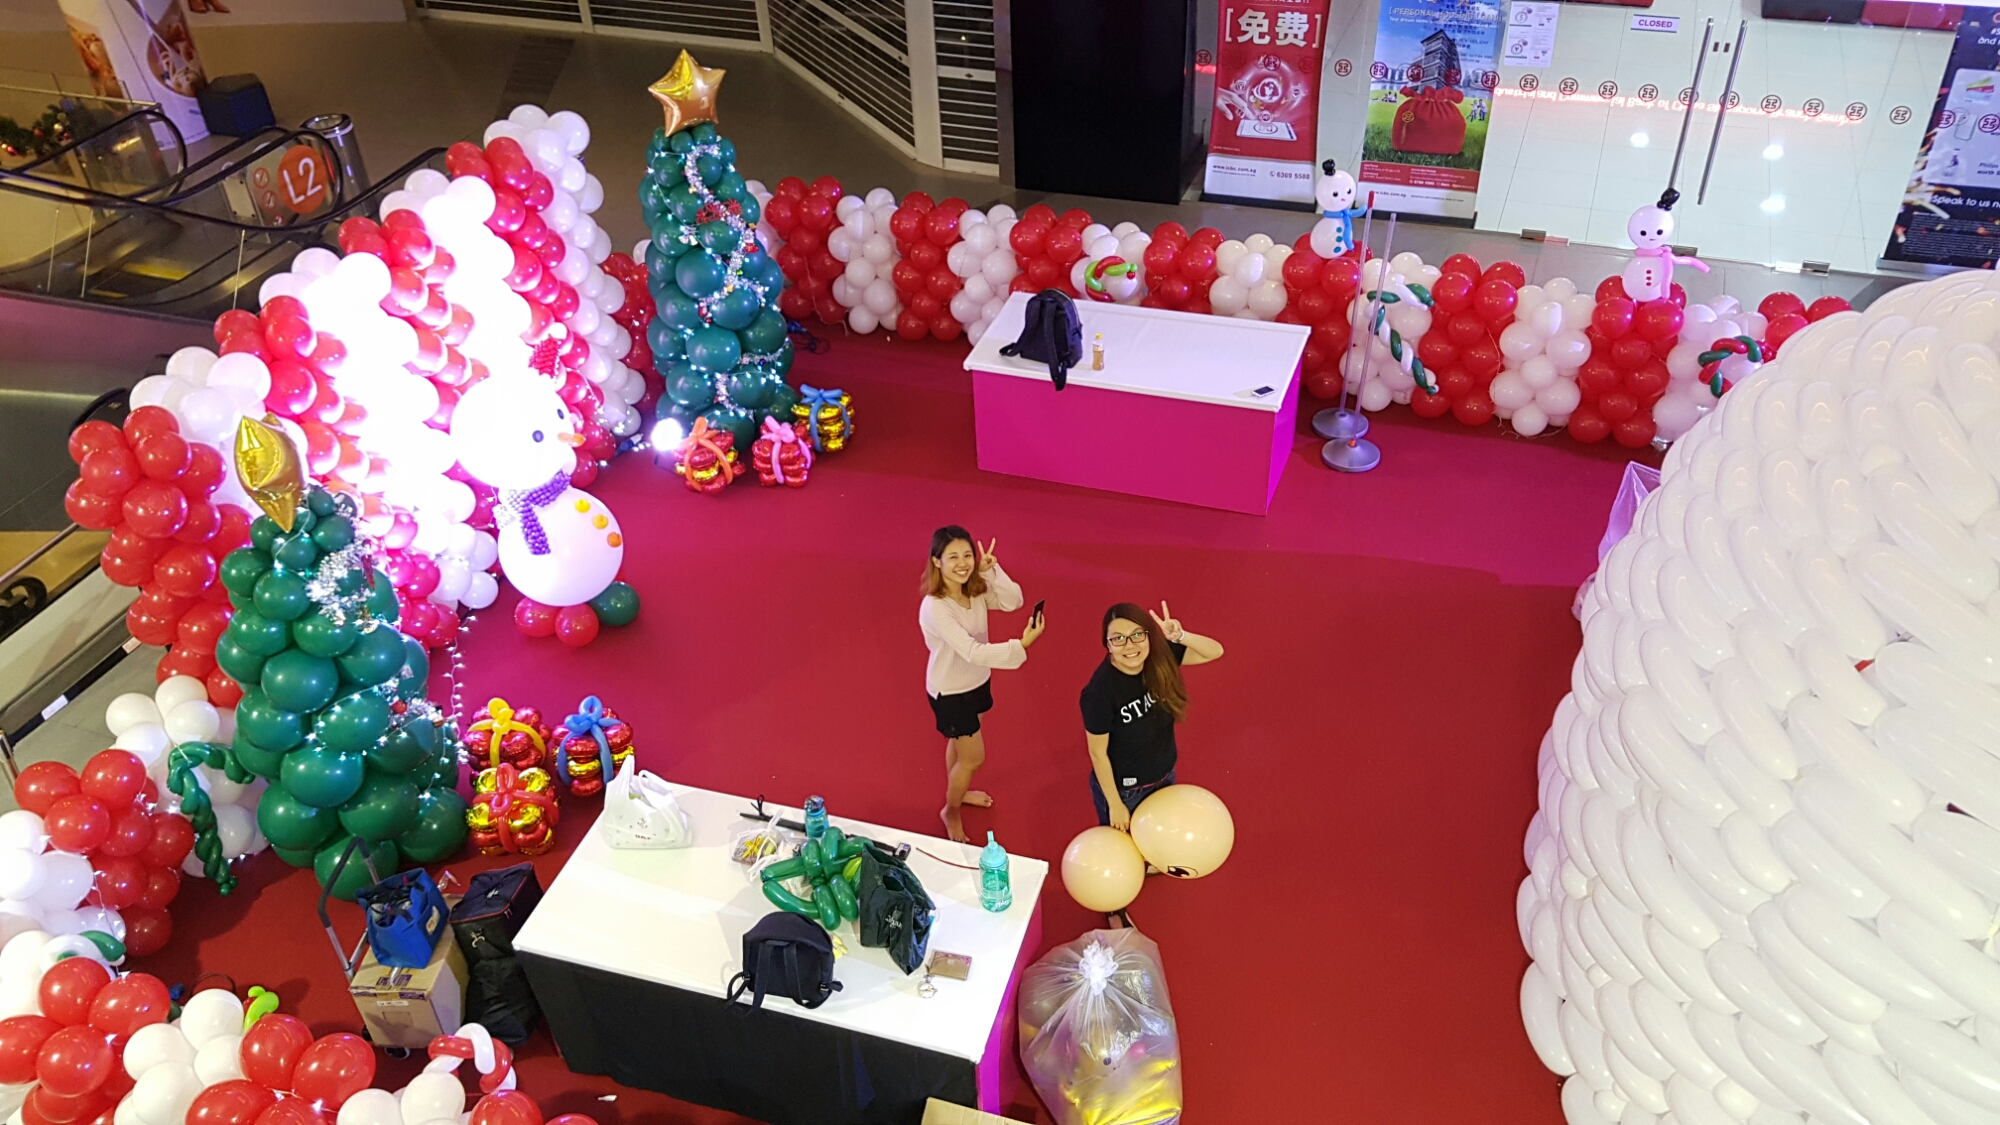 , Just finished a major shopping mall project @ Sunplaza Shopping center!, Singapore Balloon Decoration Services - Balloon Workshop and Balloon Sculpting